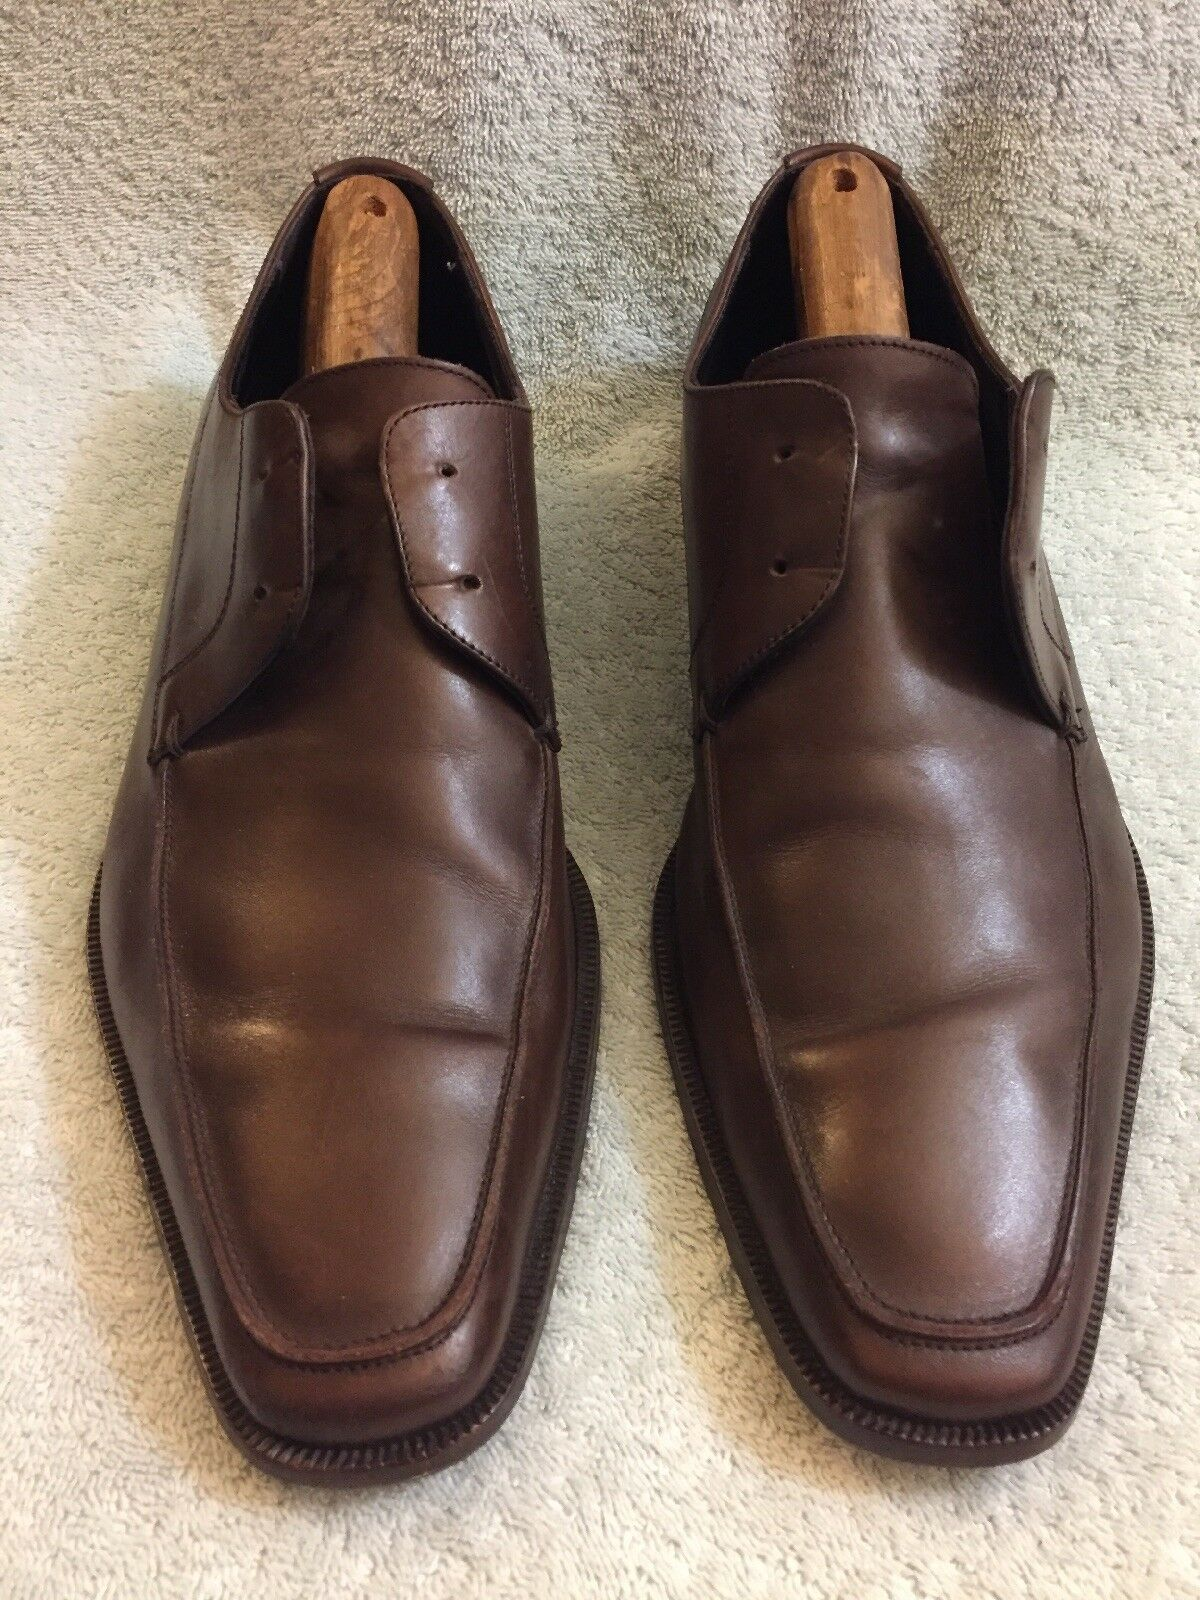 Bruno Magli Ranunclo  Men's Oxfords Dress Leather shoes Size 9.5 M  Brown